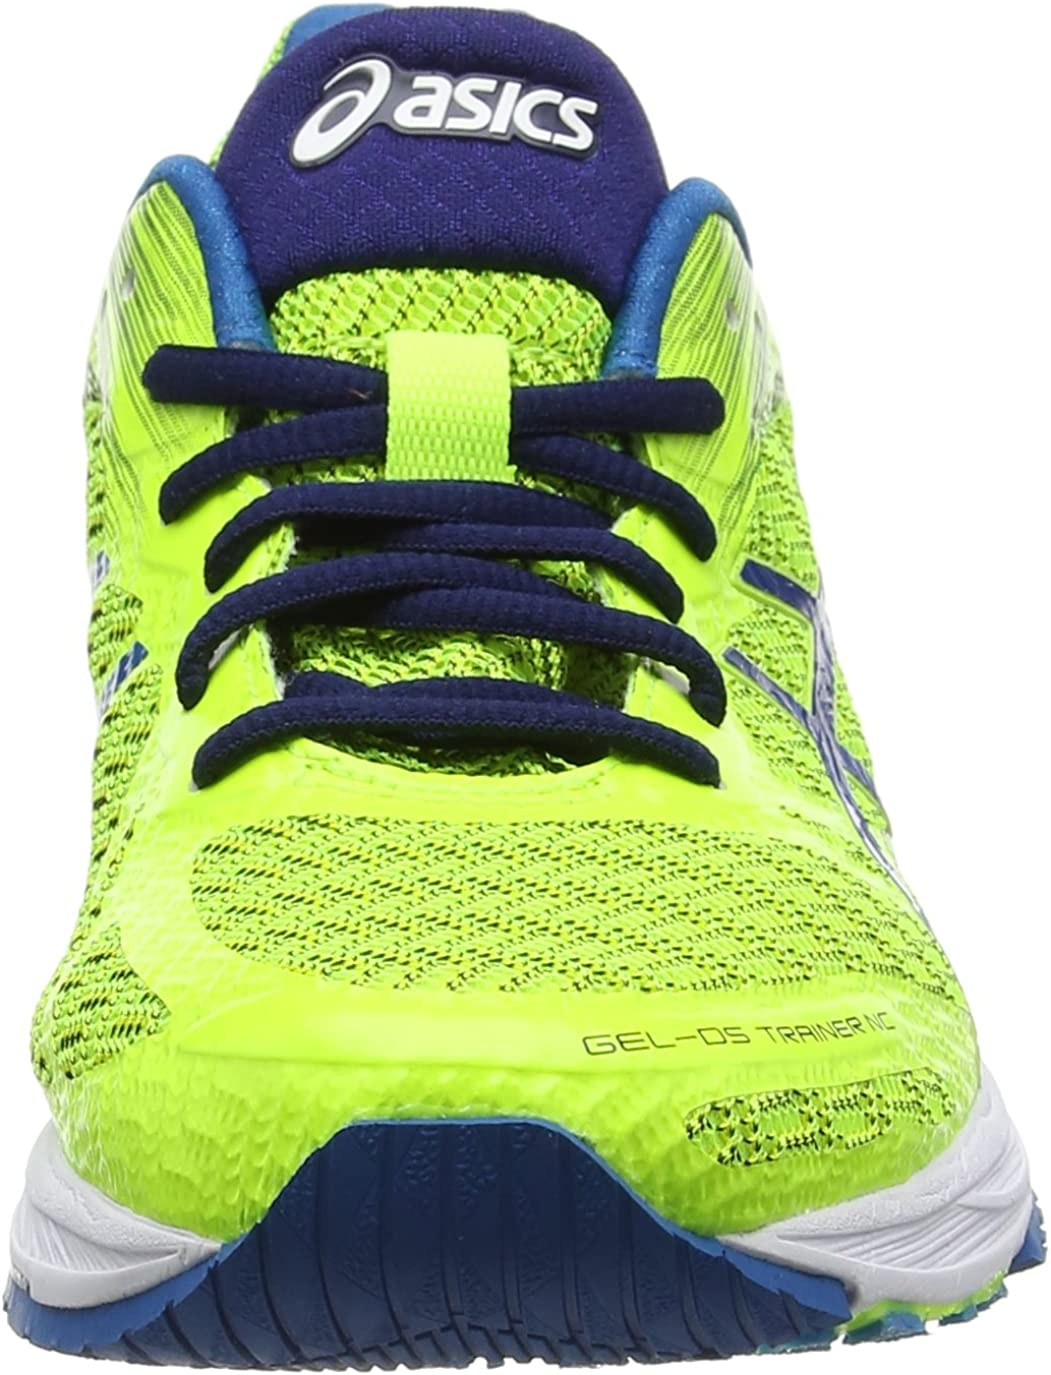 ASICS Gel DS Trainer 22 NC, Sneakers Uomo, Giallo (Safety